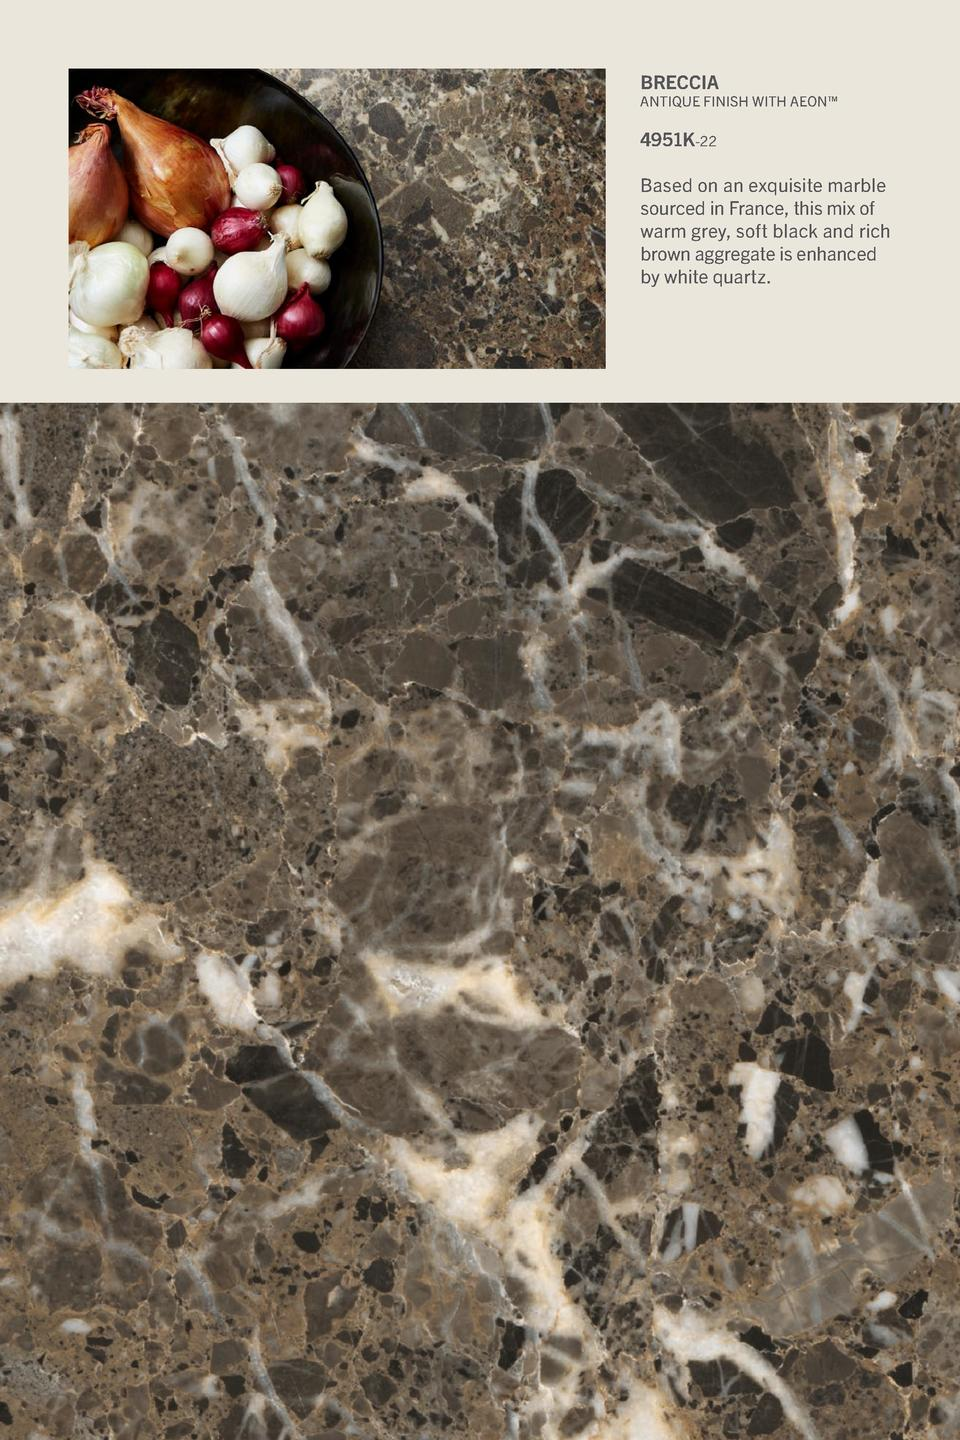 Breccia  Antique Finish With Aeon     4951K-22 Based on an exquisite marble sourced in France, this mix of warm grey, soft...